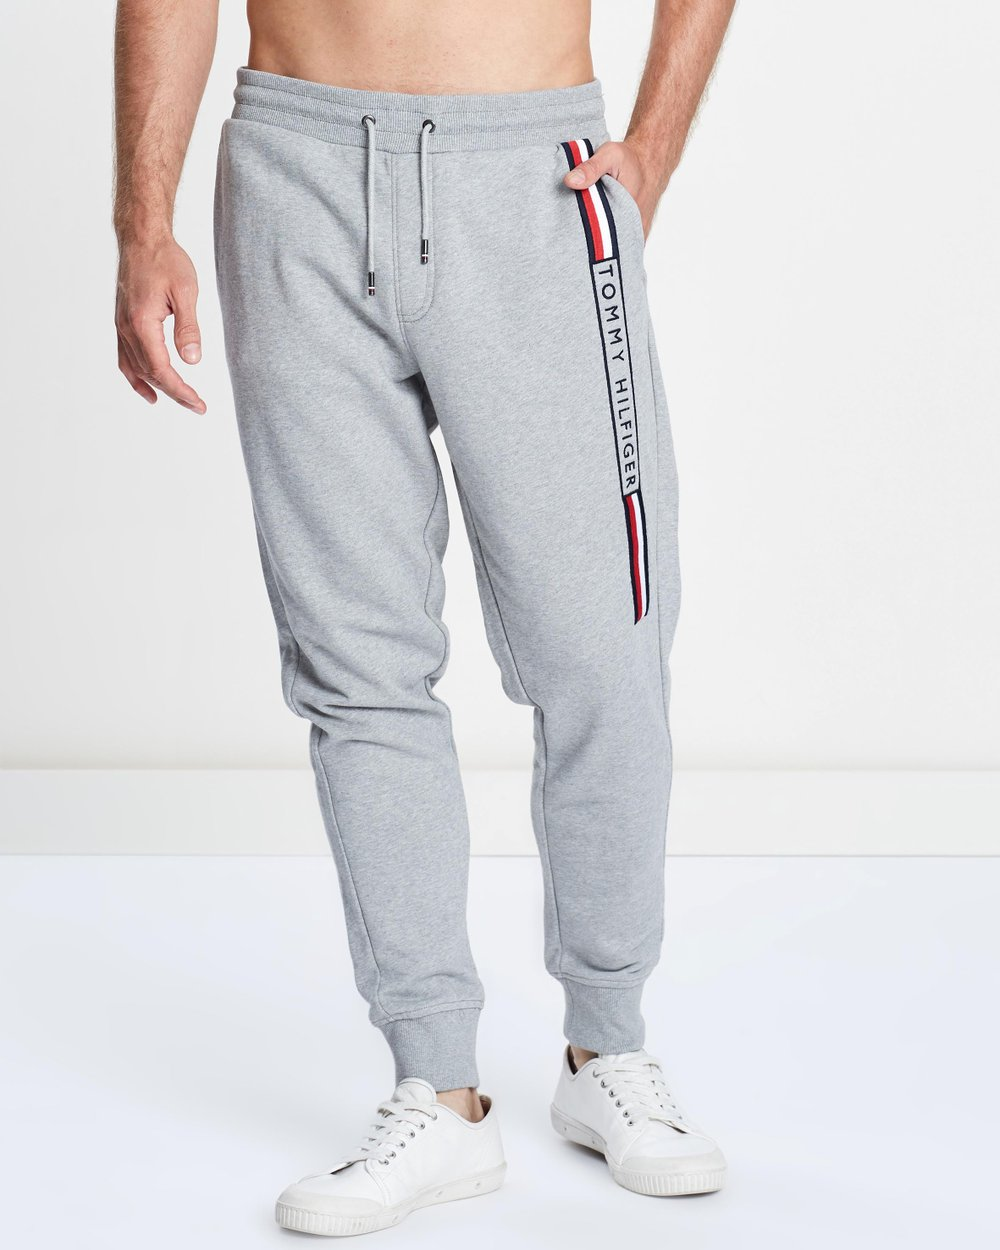 ada22037 Basic Branded Sweatpants by Tommy Hilfiger Online | THE ICONIC | Australia